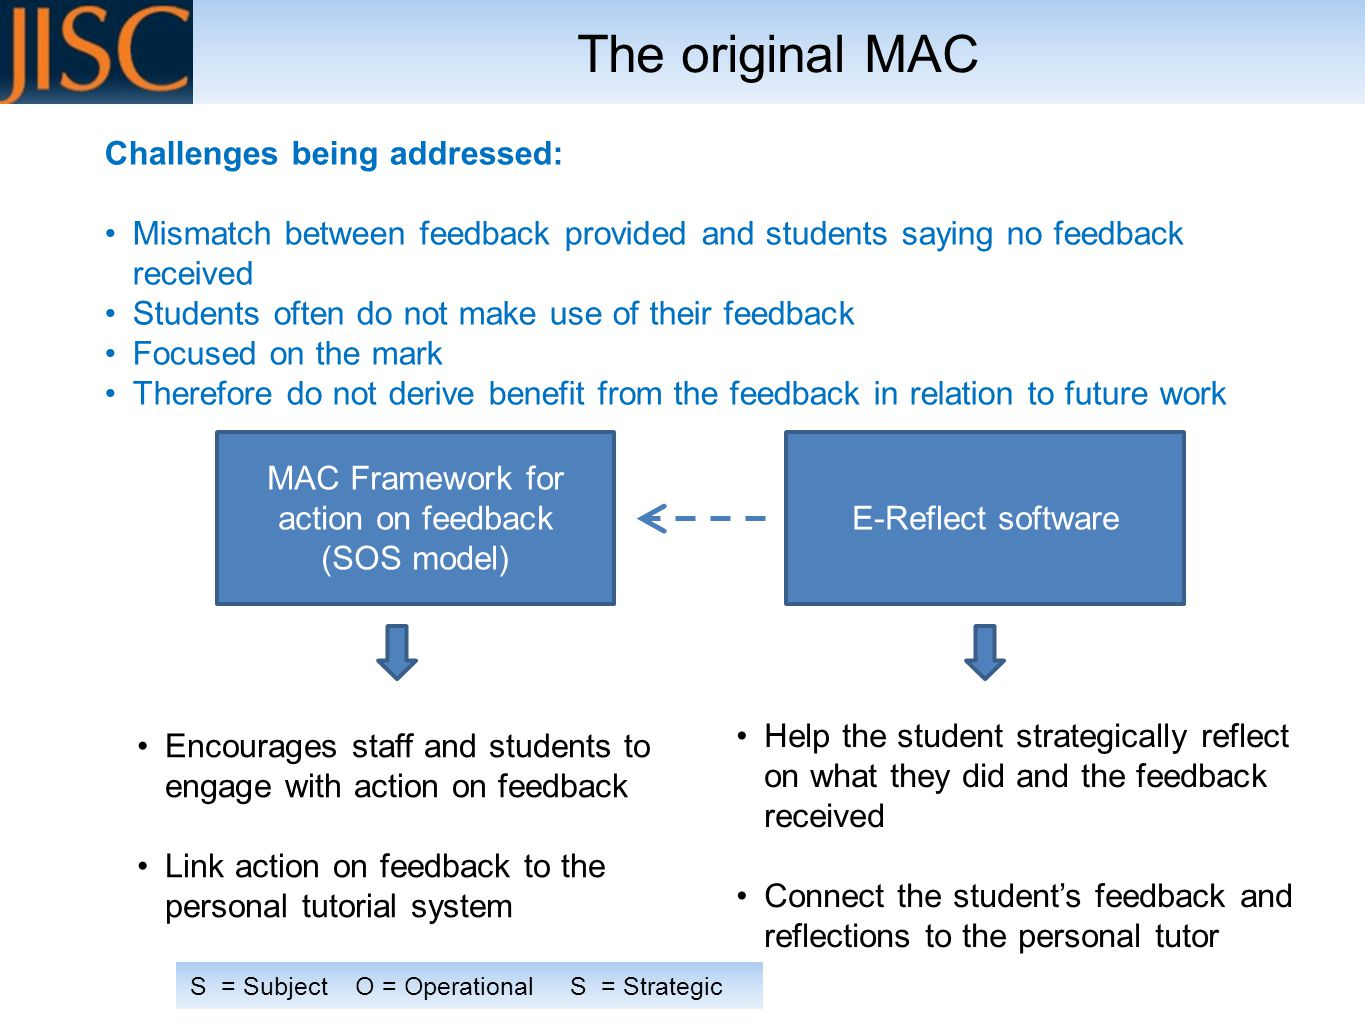 The original MAC MAC Framework for action on feedback (SOS model) E-Reflect software Encourages staff and students to engage with action on feedback Link action on feedback to the personal tutorial system Help the student strategically reflect on what they did and the feedback received Connect the students feedback and reflections to the personal tutor S = Subject O = Operational S = Strategic Challenges being addressed: Mismatch between feedback provided and students saying no feedback received Students often do not make use of their feedback Focused on the mark Therefore do not derive benefit from the feedback in relation to future work